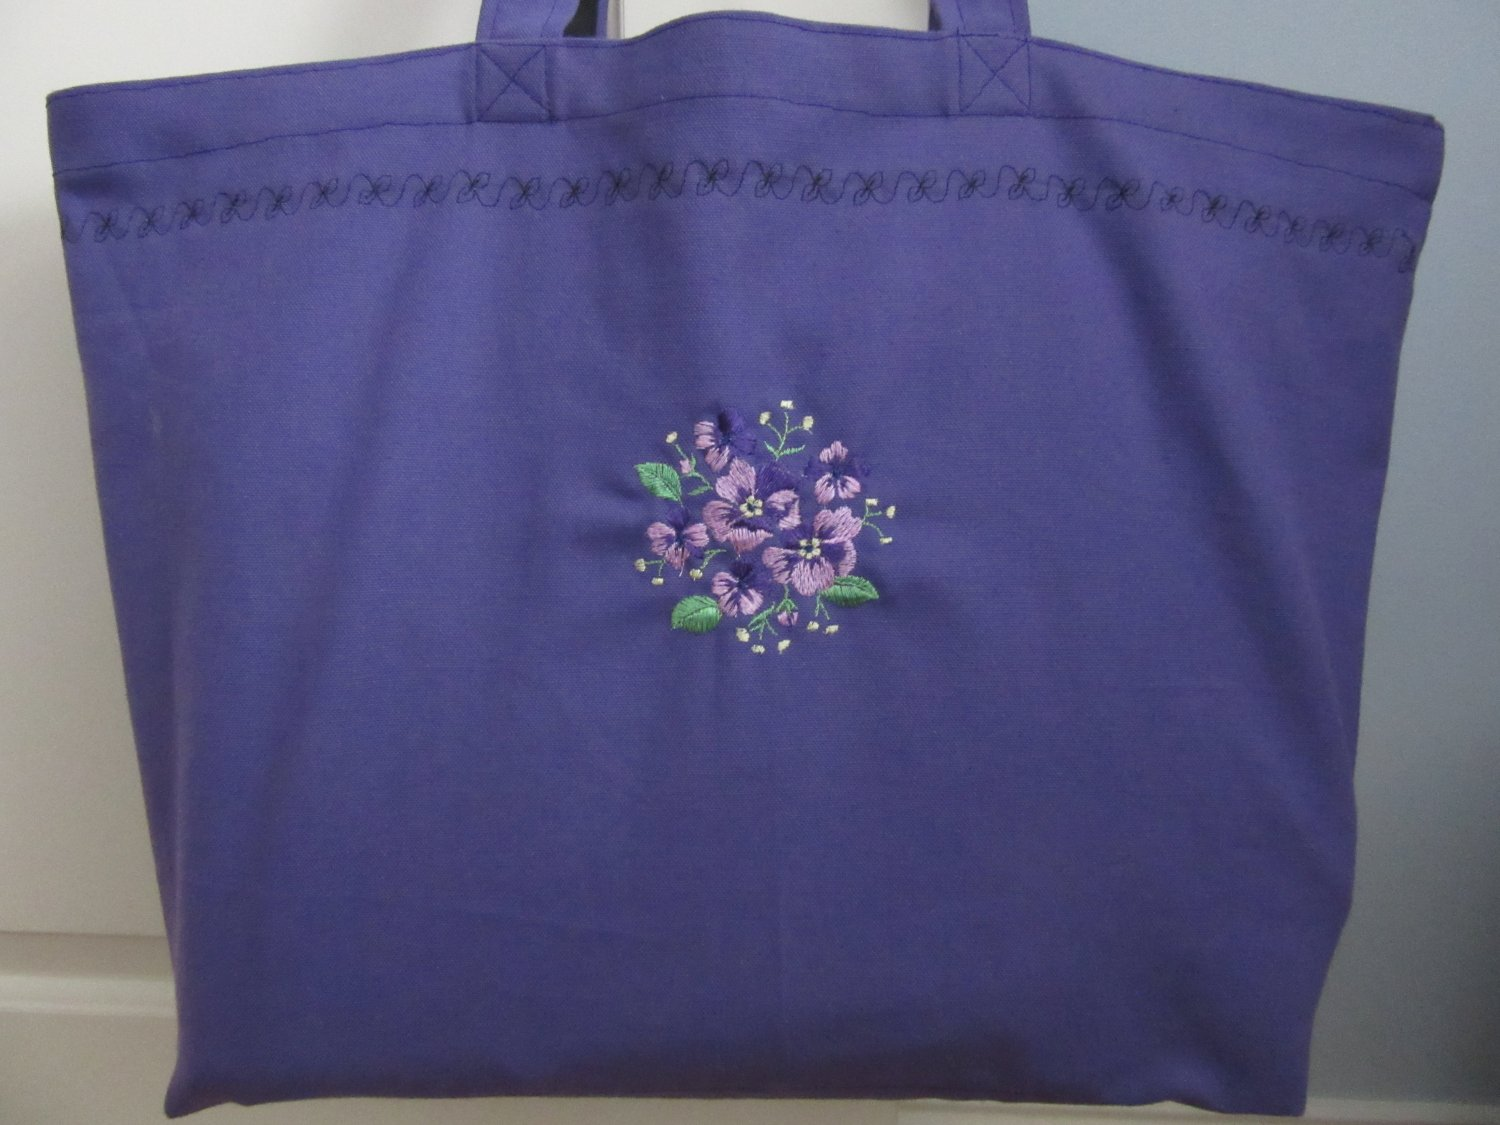 NEW Lg Purple Embroidered Violets Folding Eco Friendly Tote Bag with Cell Phone Pocket